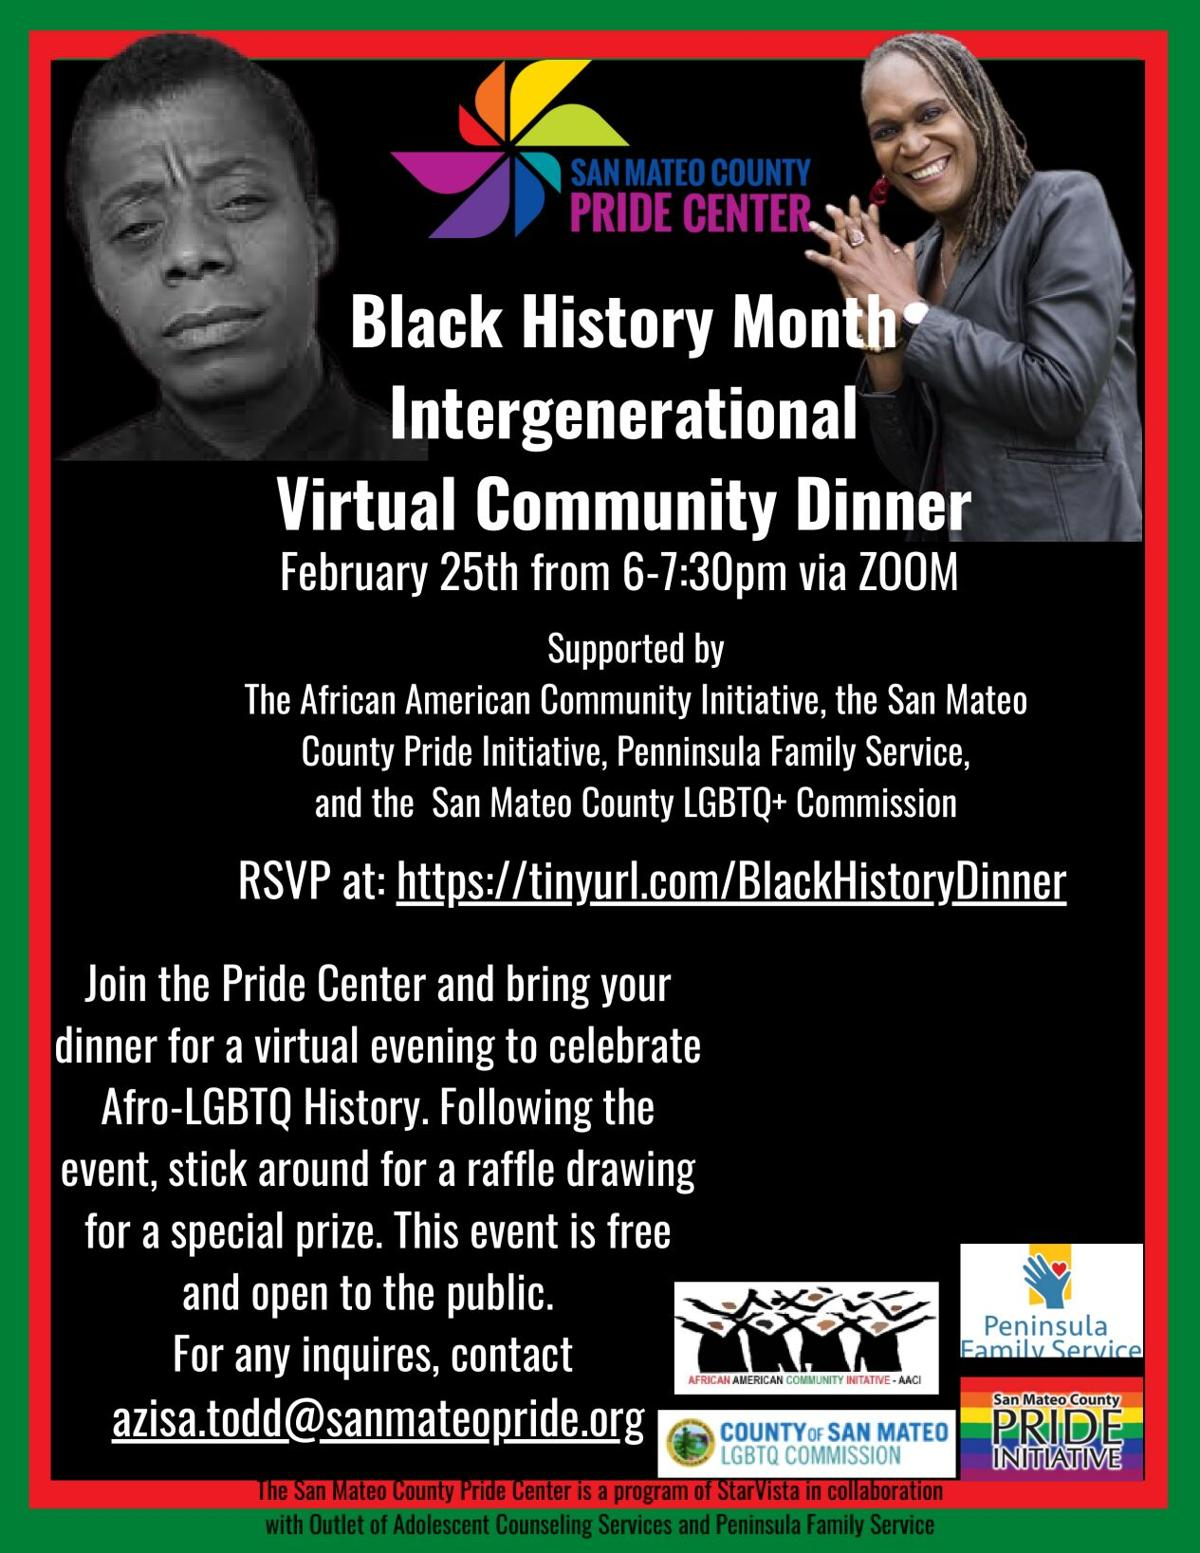 Black History Month Intergenerational Dinner